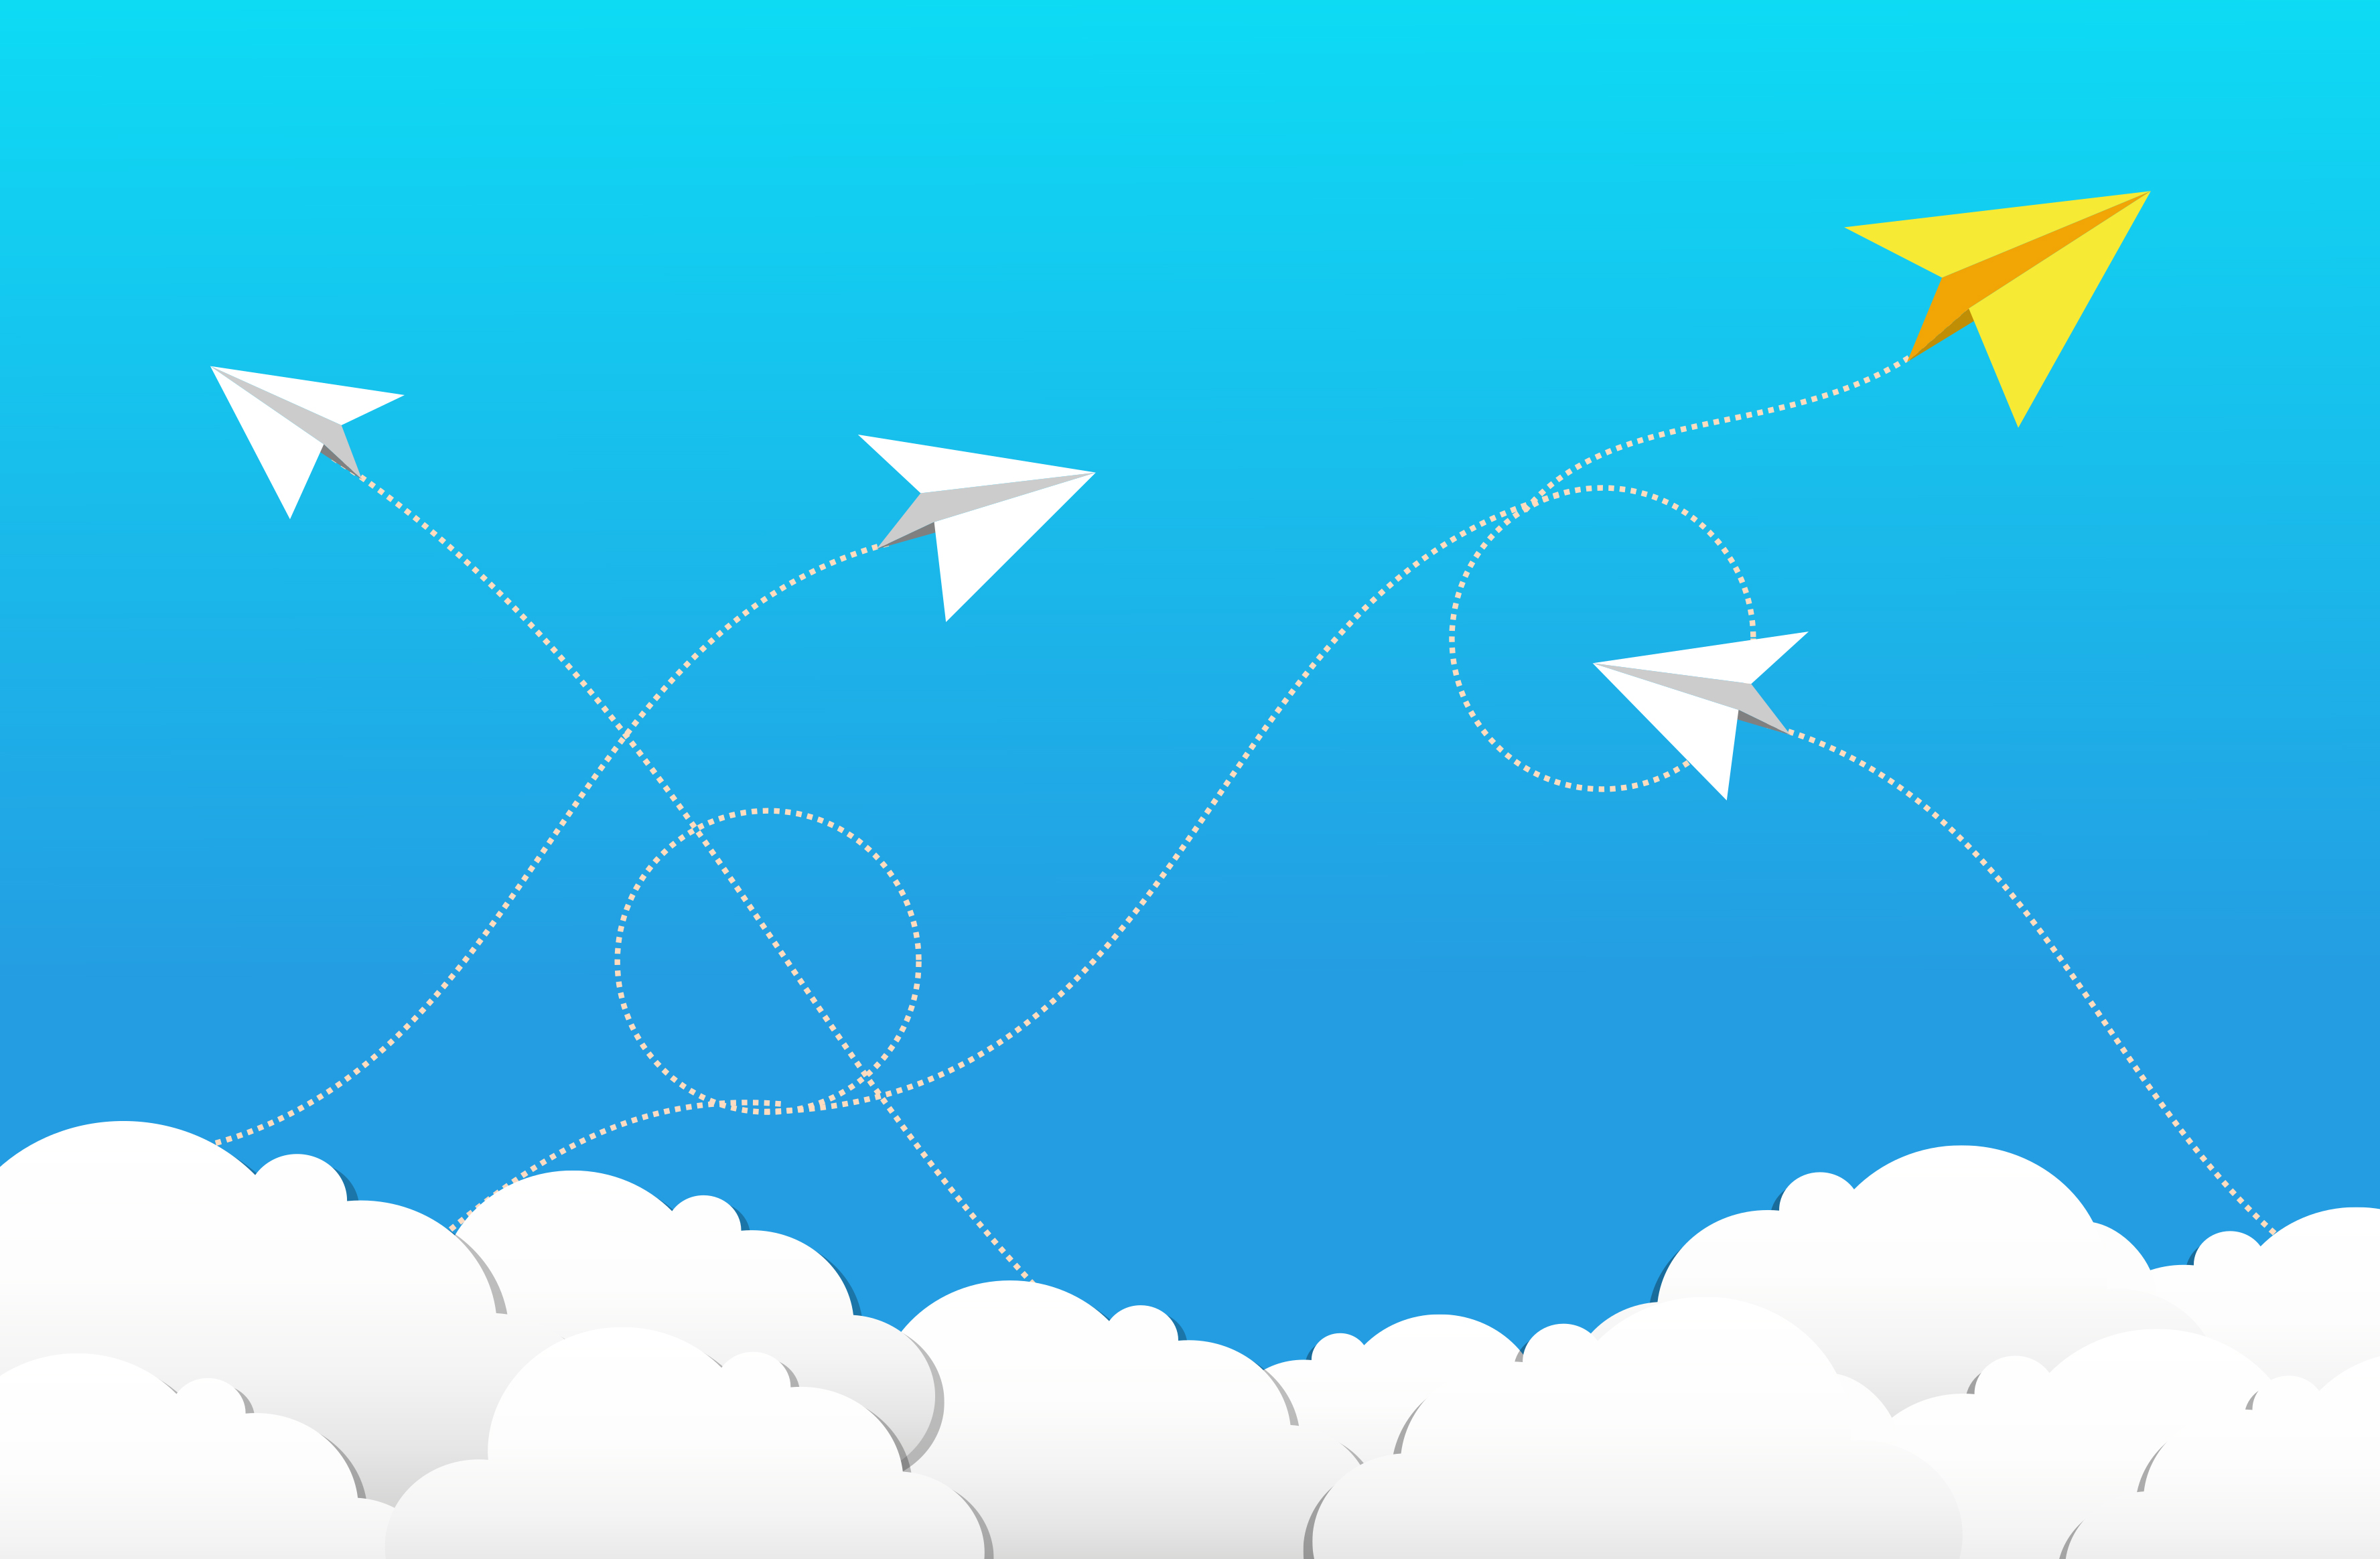 Flying paper planes and clouds - cloud computing concept photo